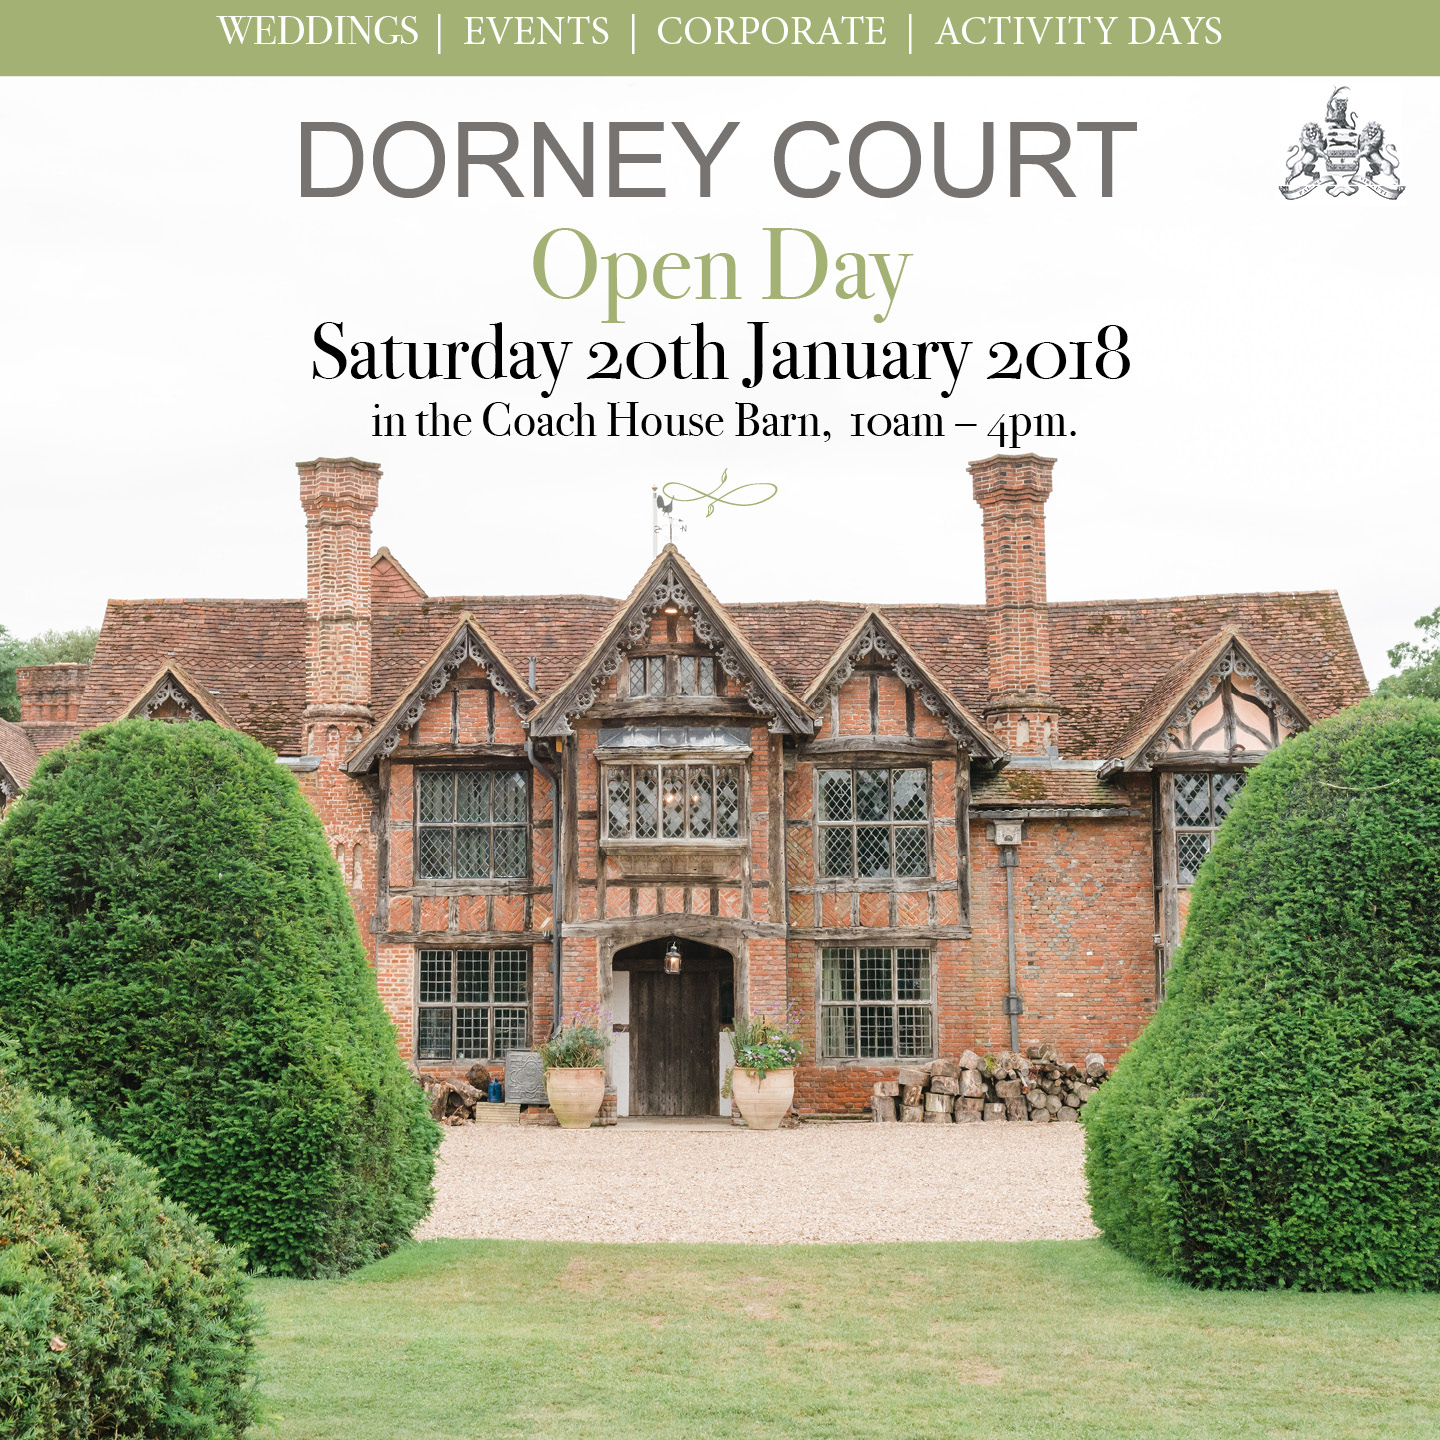 Dorney Court Open Day Welcome To Dorney Court